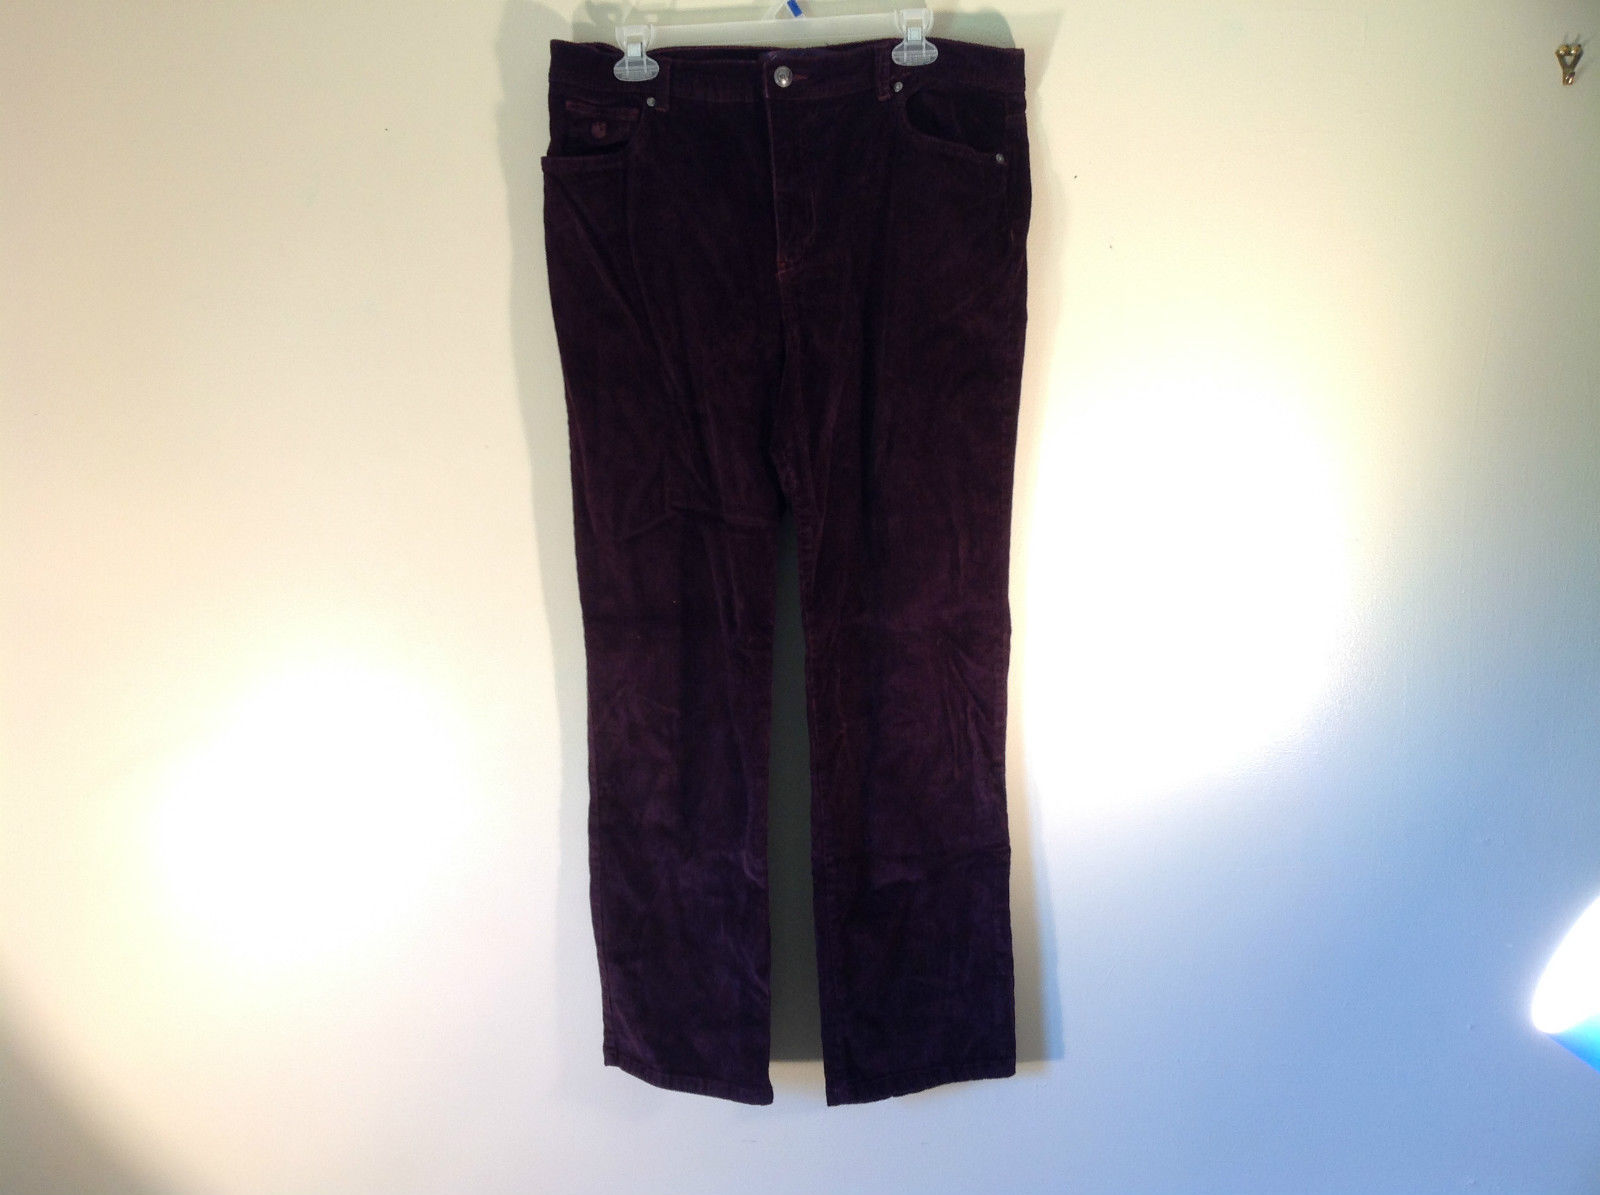 Deep Burgundy Size 14 Corduroy Pants Size 14 Gloria Vanderbilt Button Zipper